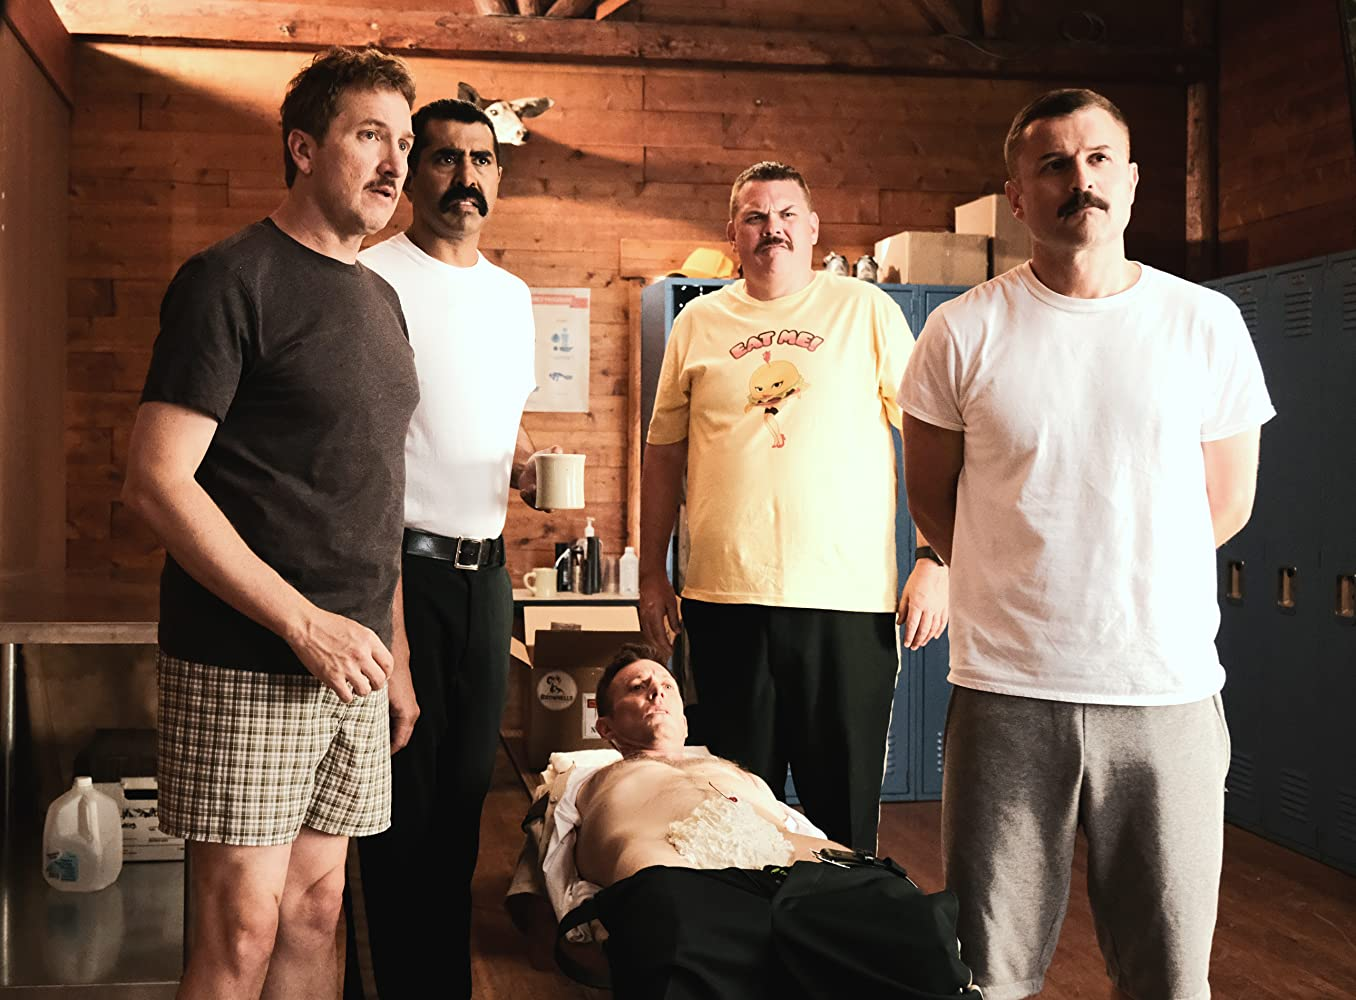 Jay Chandrasekhar, Kevin Heffernan, Steve Lemme, Paul Soter, Erik Stolhanske, and Super Troopers in Super Troopers 2 (2018)